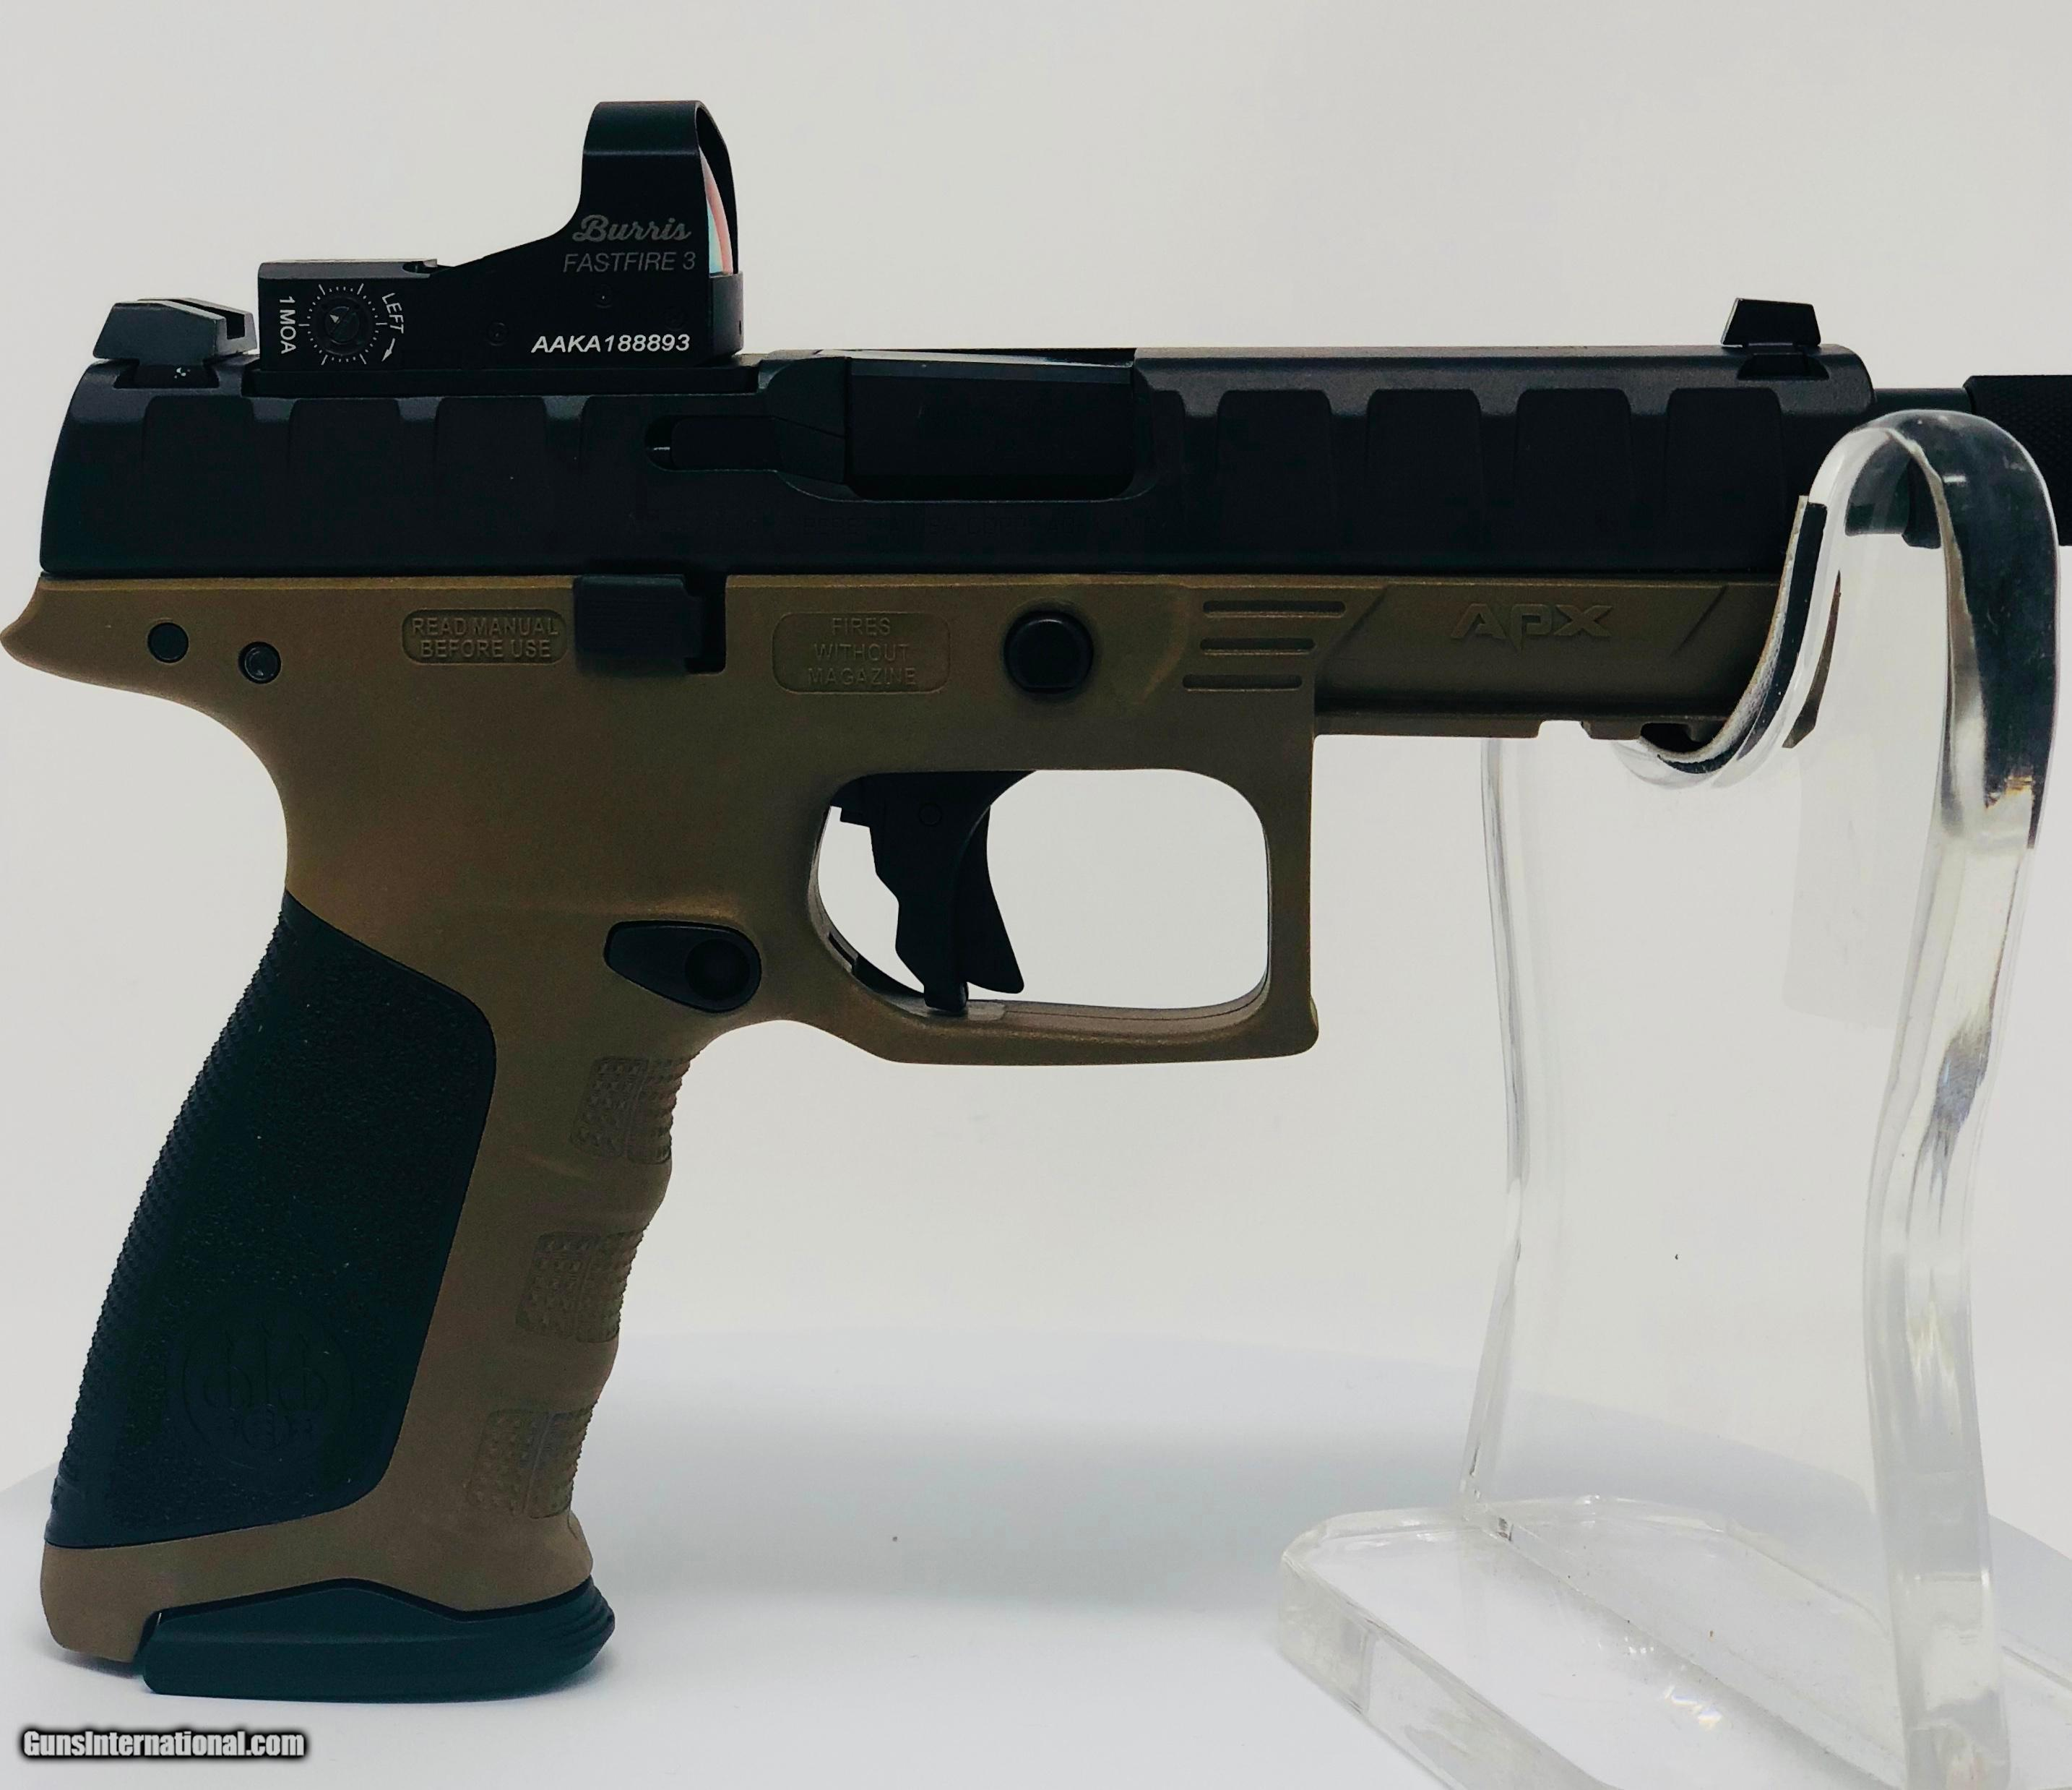 Beretta APX Combat with Burris Fast Fire Red Dot